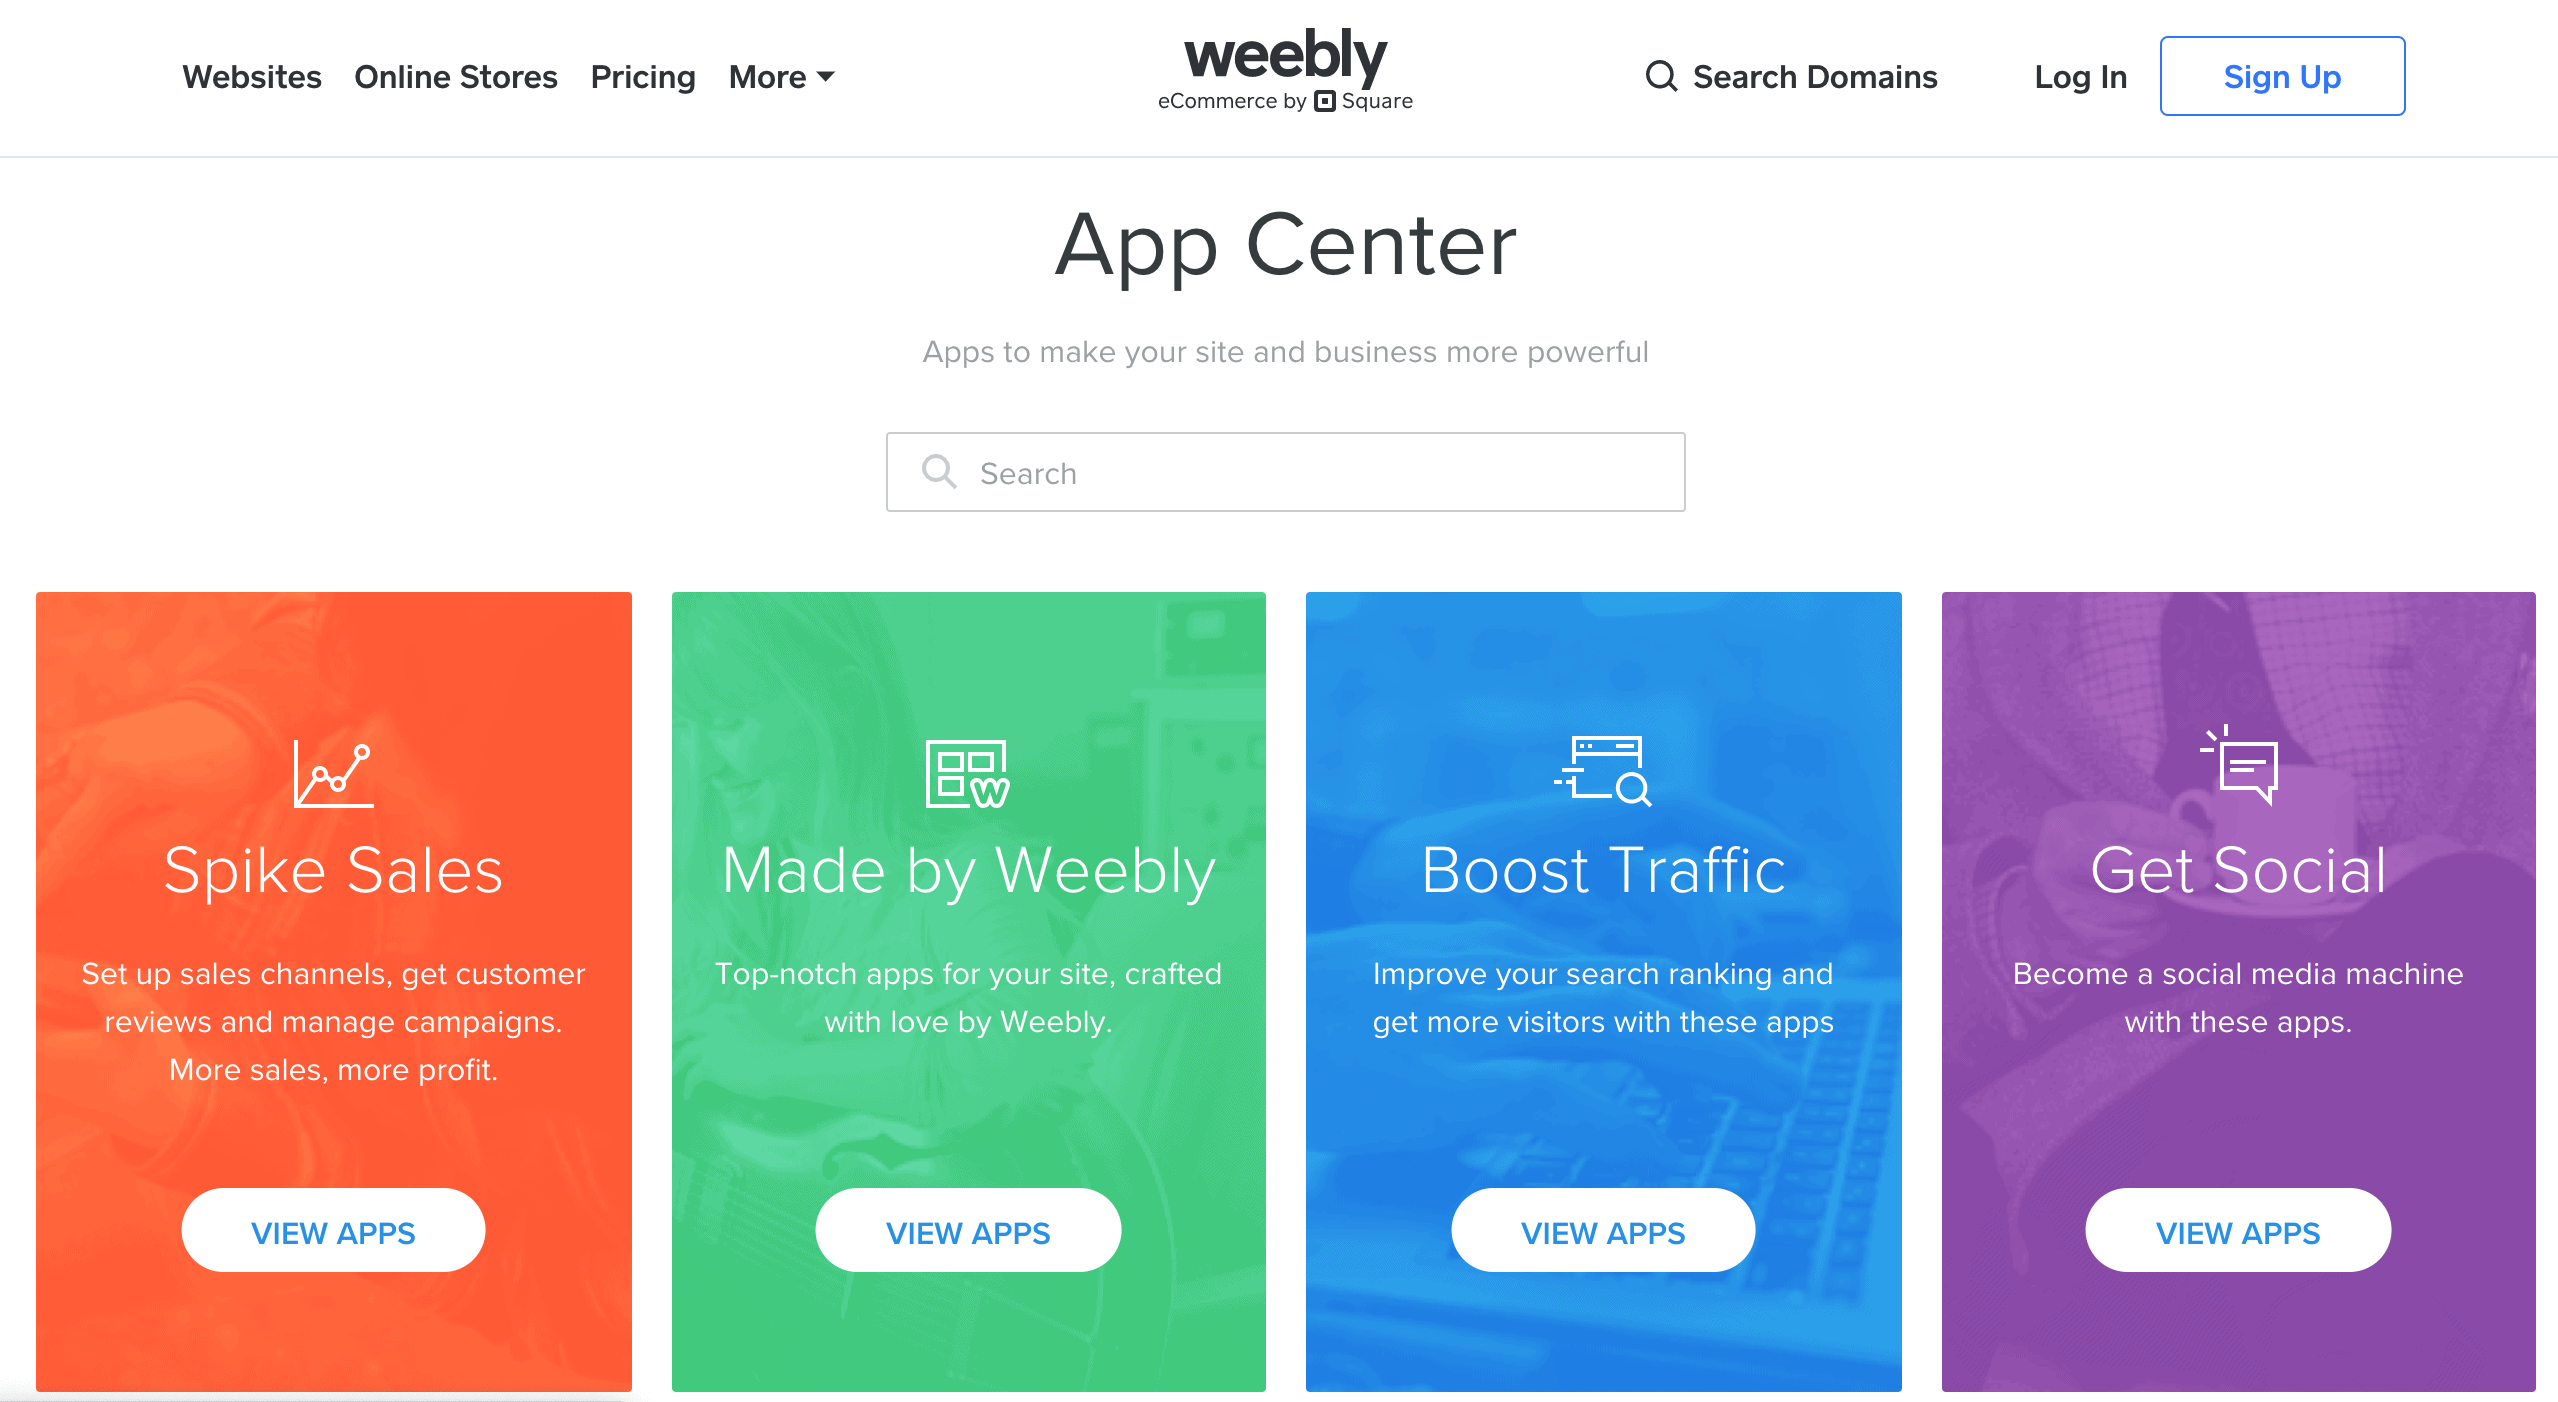 Weebly's App Center